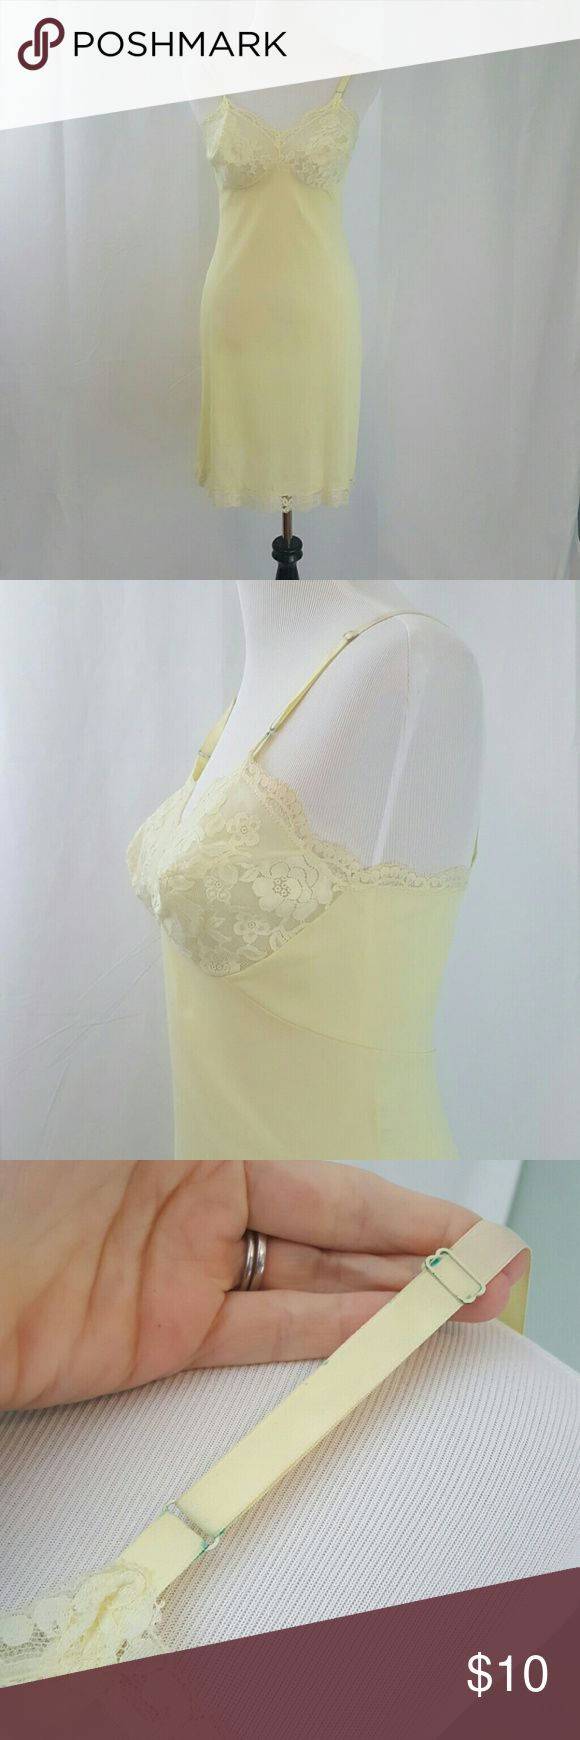 Vintage 1960s Yellow Bullet Bra Slip Dress S GUC . This is a sweet slip chemise by Gossard Artemis. Size 34 There is some discoloration to the straps where the findings are. ModCloth Intimates & Sleepwear Chemises & Slips